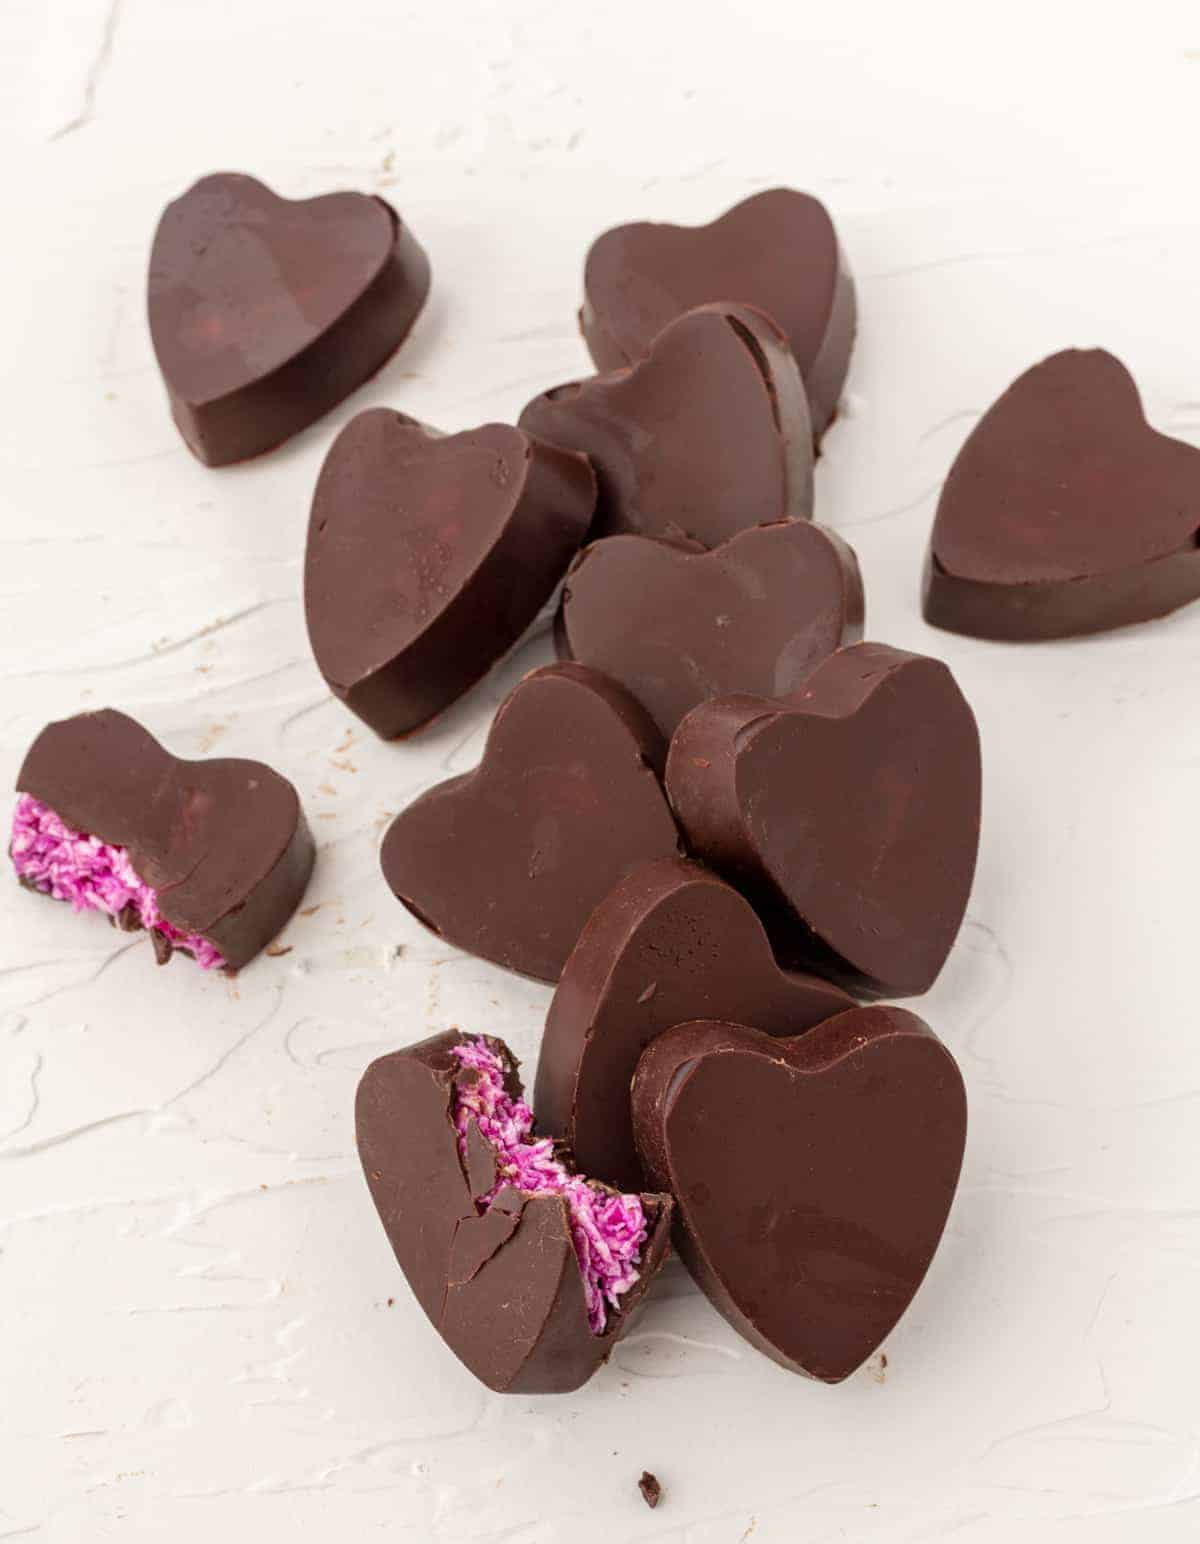 Heart shaped copy cat mounds candies. bright pink inside. vegan candy recipe.